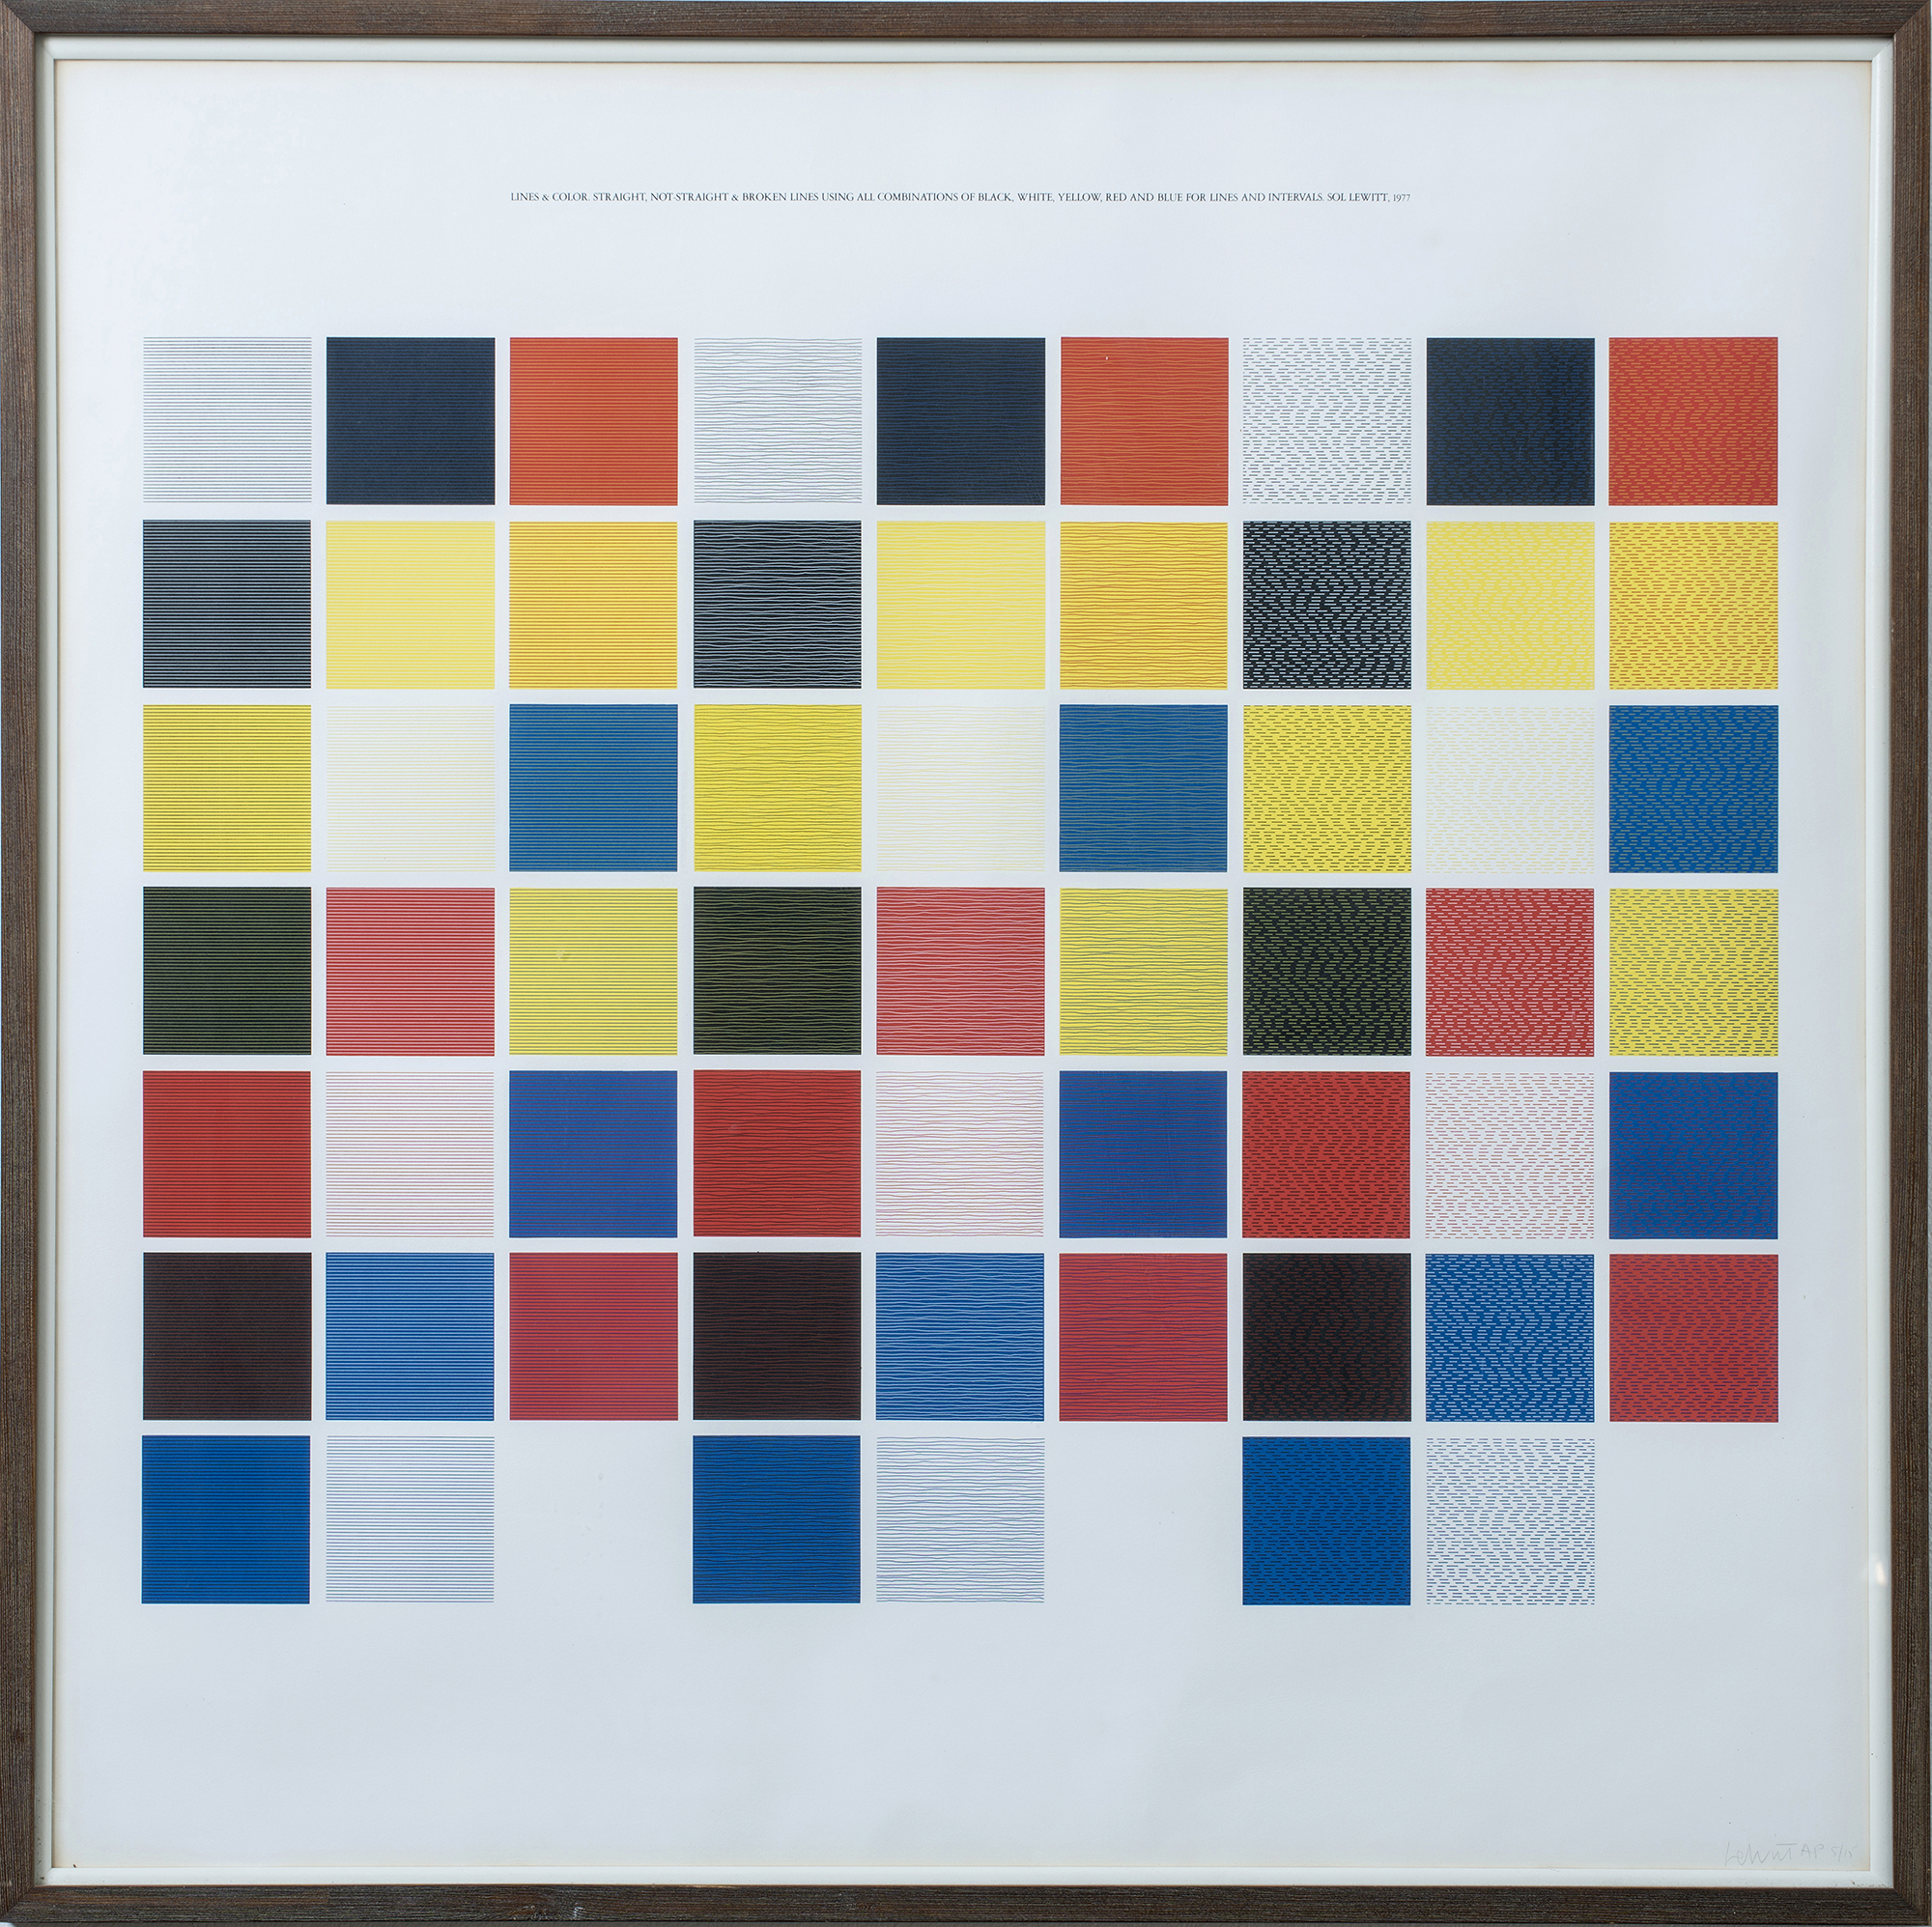 Lines and color, straight, not-straight and broken lines using combinations of black, white, yellow, red and blue for lines and intervals, 1977